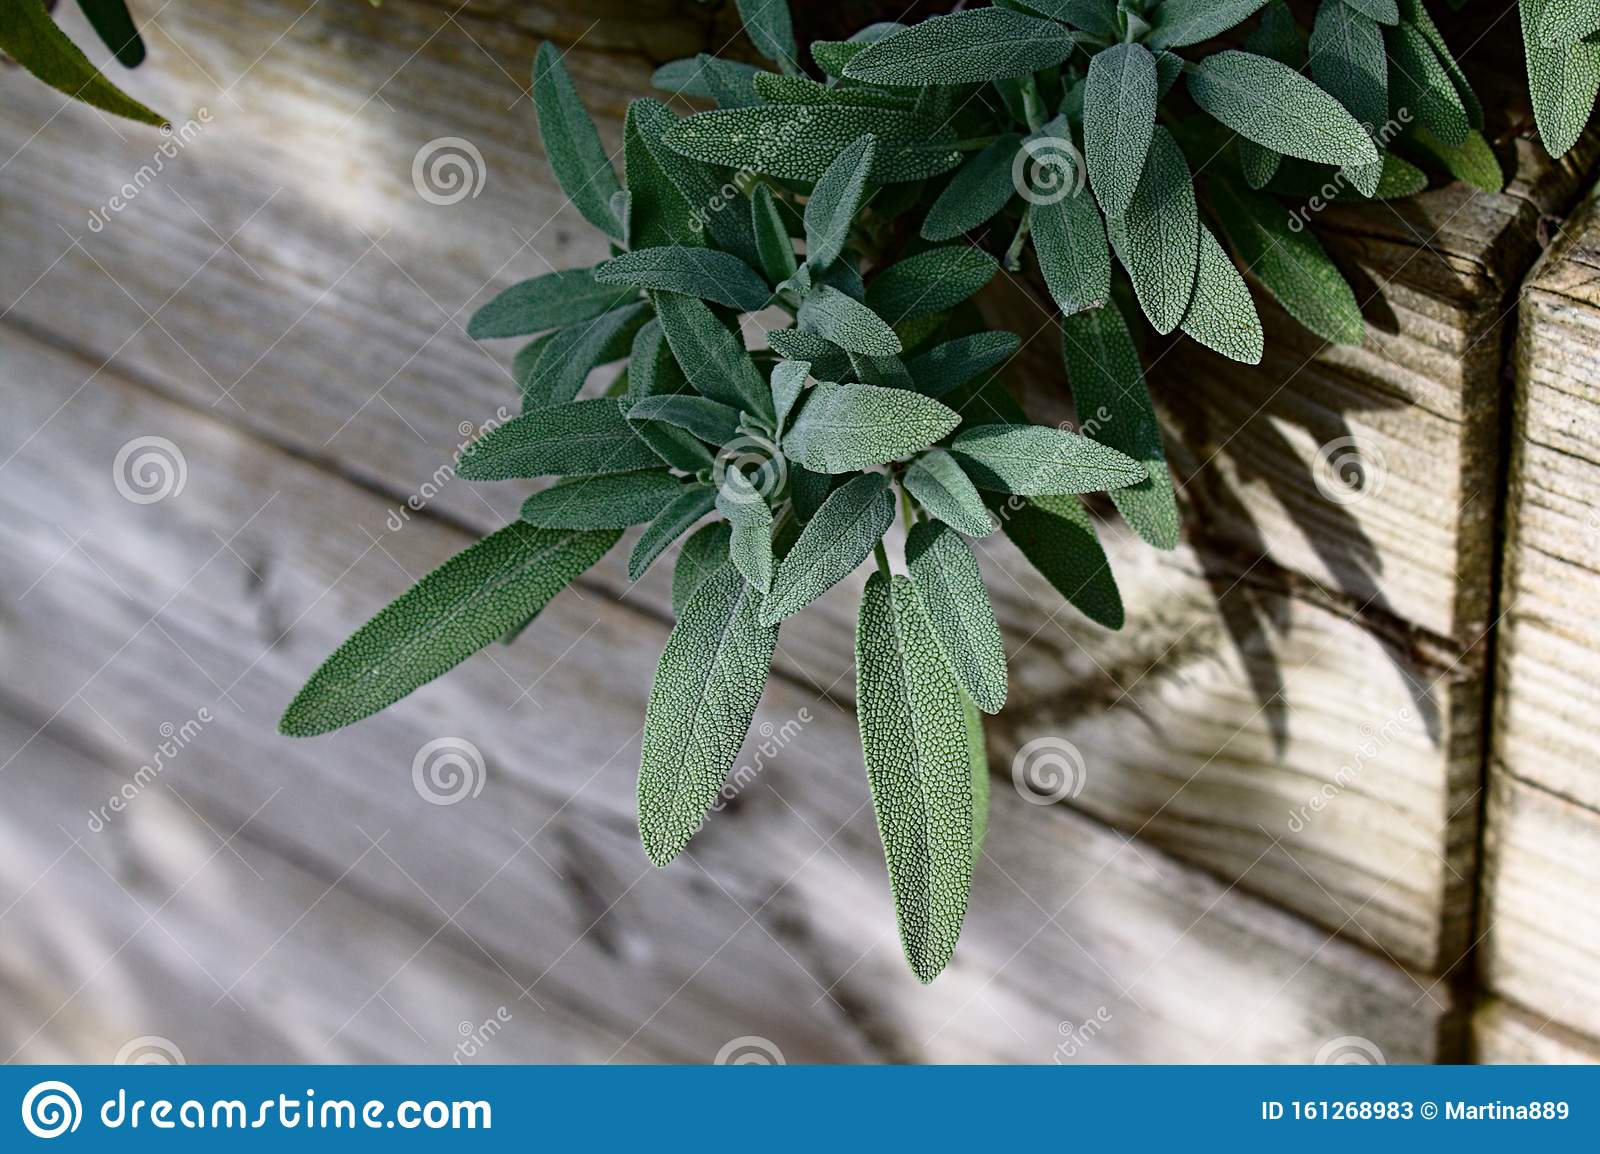 Spanish Sage In The Garden Stock Image Image Of Plants 161268983,Easy Meatball Recipe For Spaghetti